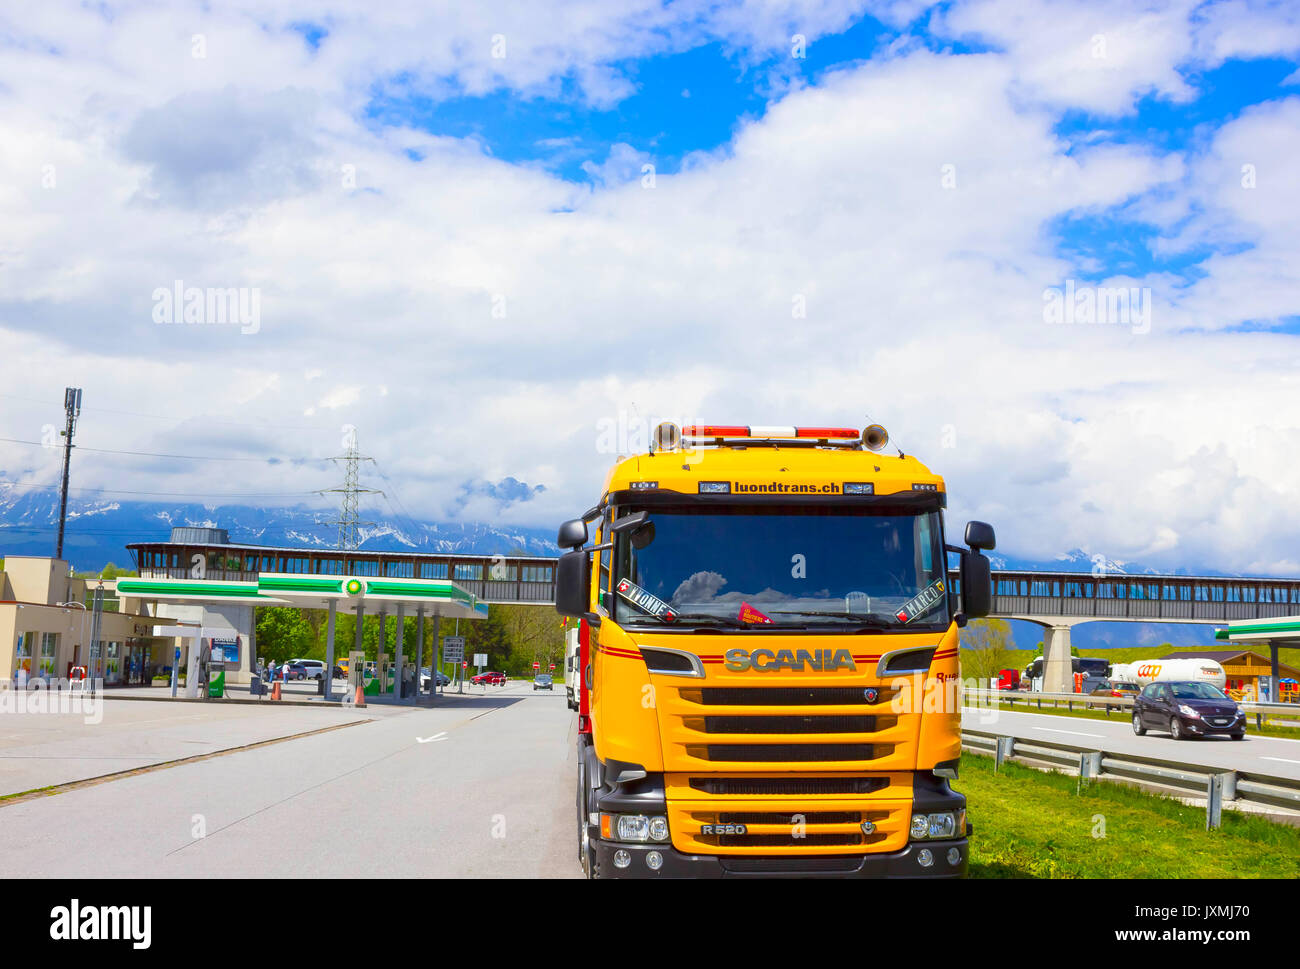 Yellow Truck With Trailer Imágenes De Stock & Yellow Truck With ...